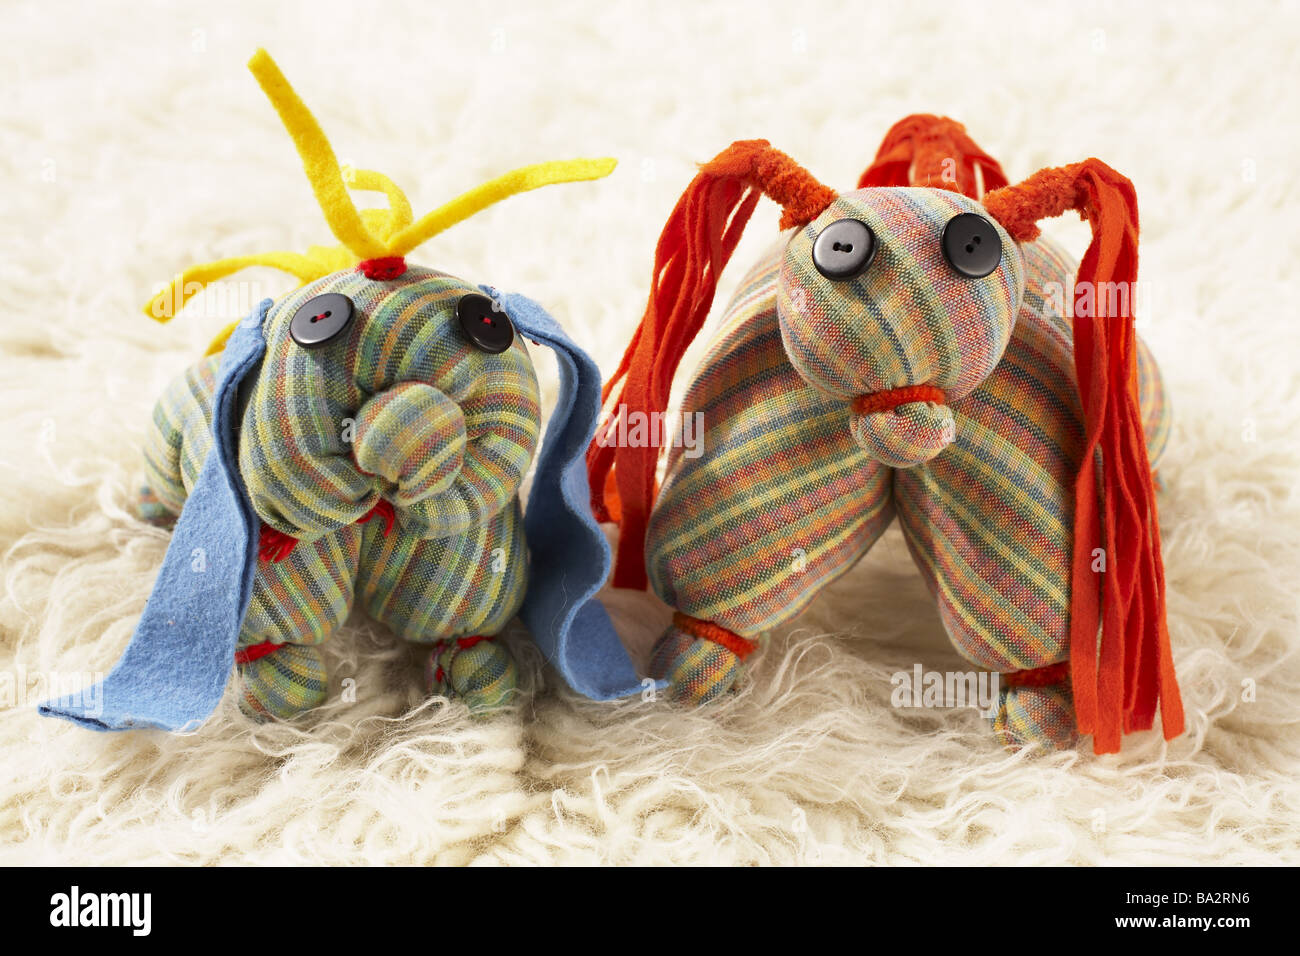 Handicraft Material Animals Toy Kuscheltiere Symbol Childhood Plays Wastes The Last Chance Colorfully Colored Man Made